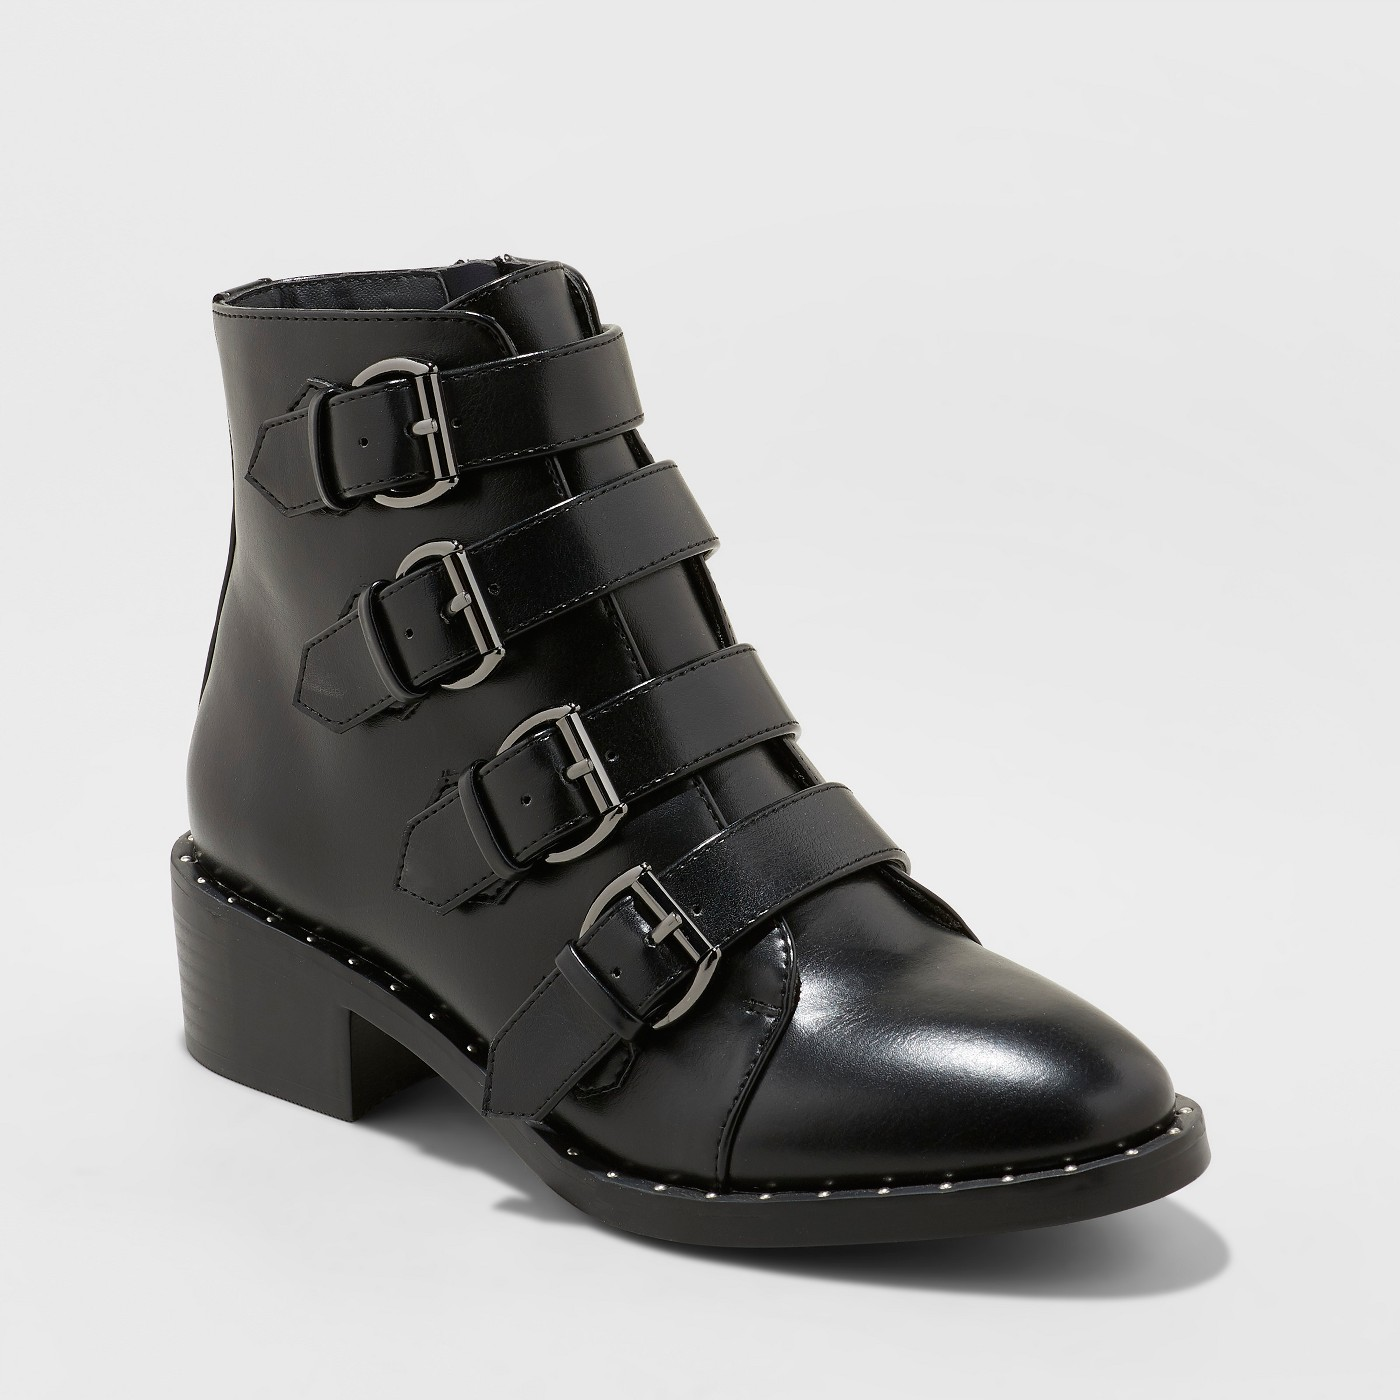 Target: A New Day Nikko Combat Boot - $38